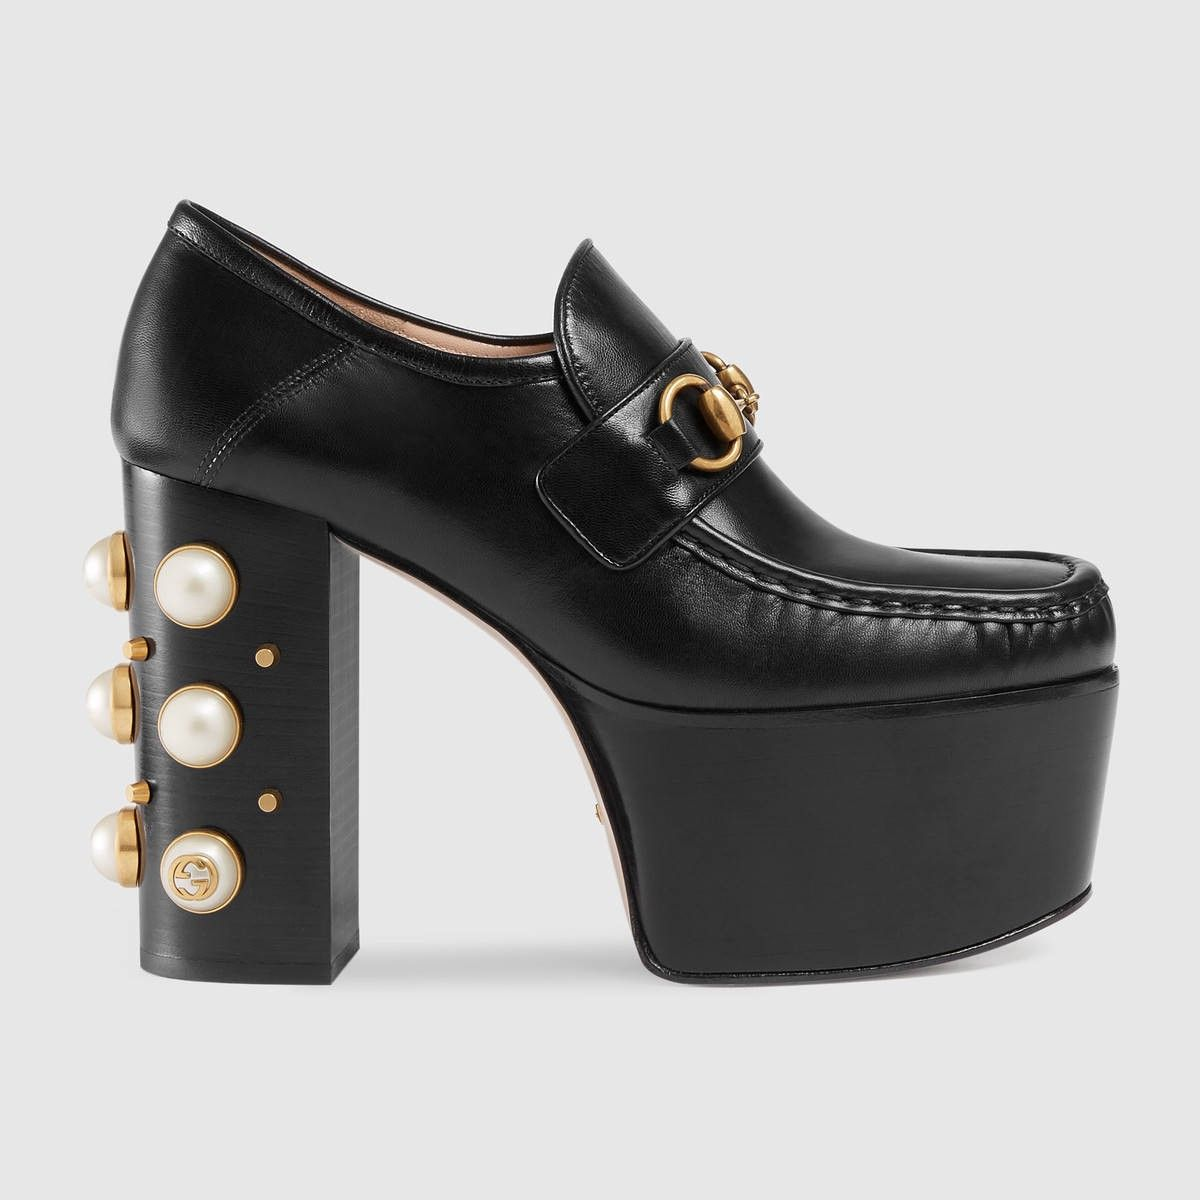 dc1955e6174 GUCCI Studded Leather Horsebit Loafers - Black Leather.  gucci  shoes  all